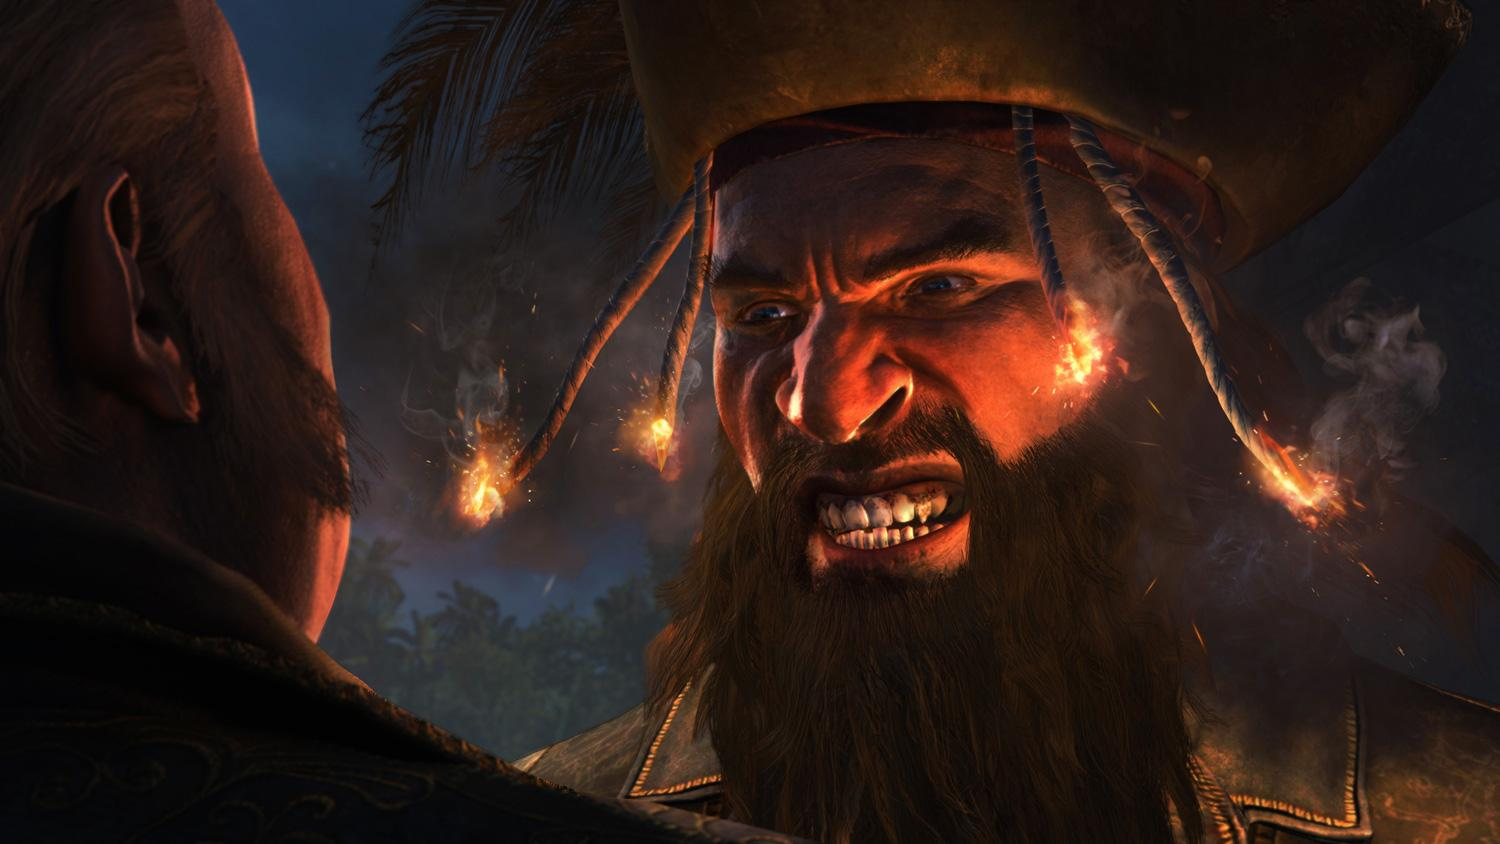 To be honest we thought Blackbeard was a bit of a bore in Assassin's Creed IV